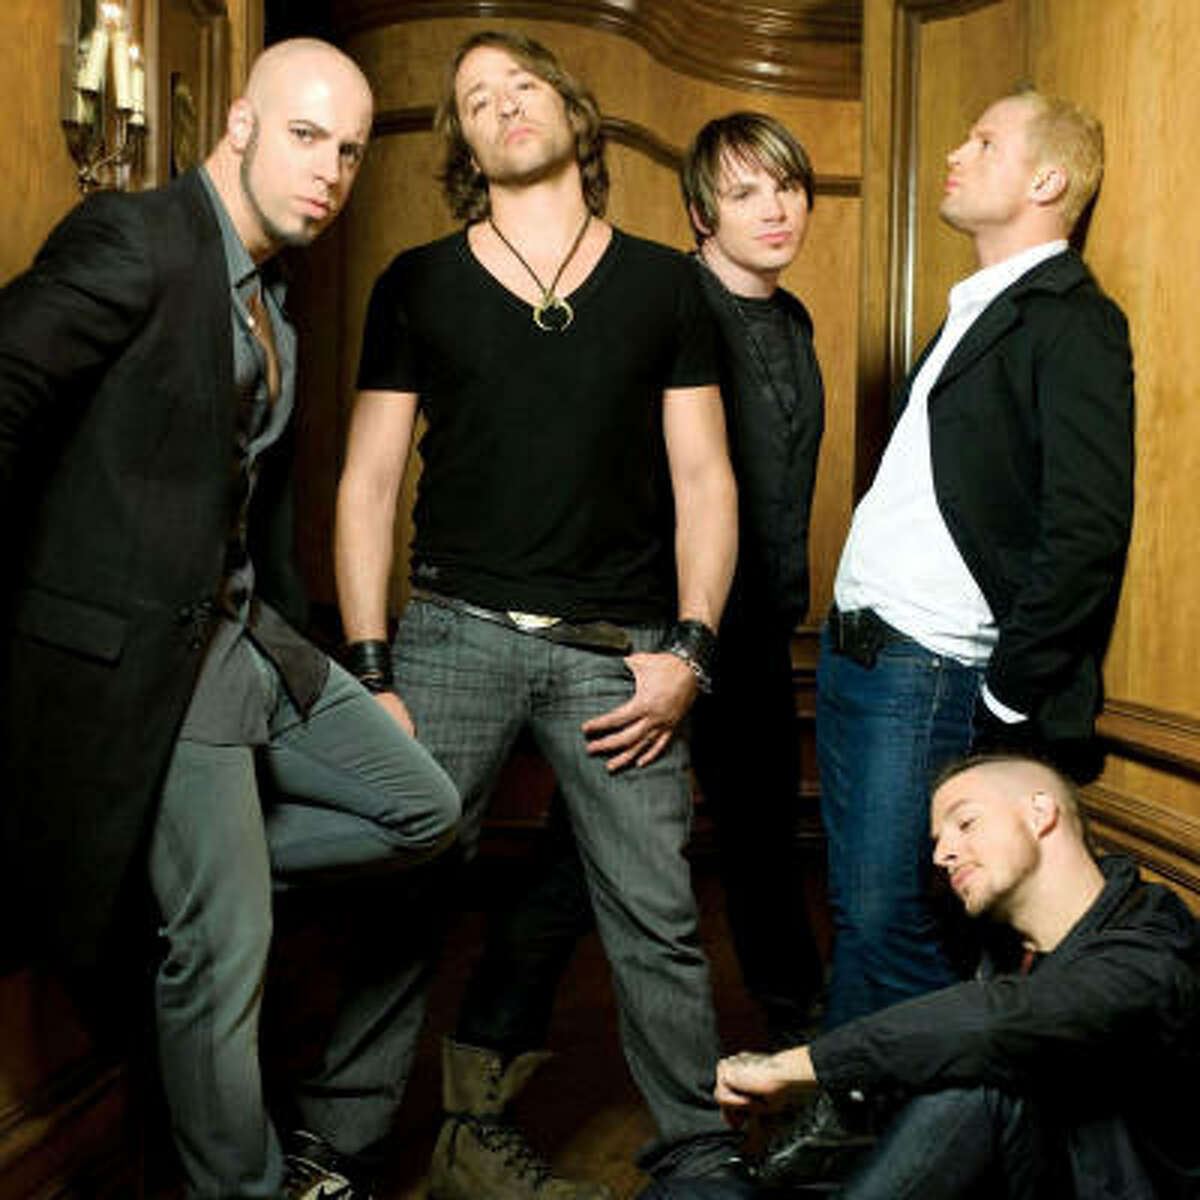 Chris Daughtry, left, sticks to what he does best on Leave This Town, his follow-up to 2006's 4-million-selling debut disc.